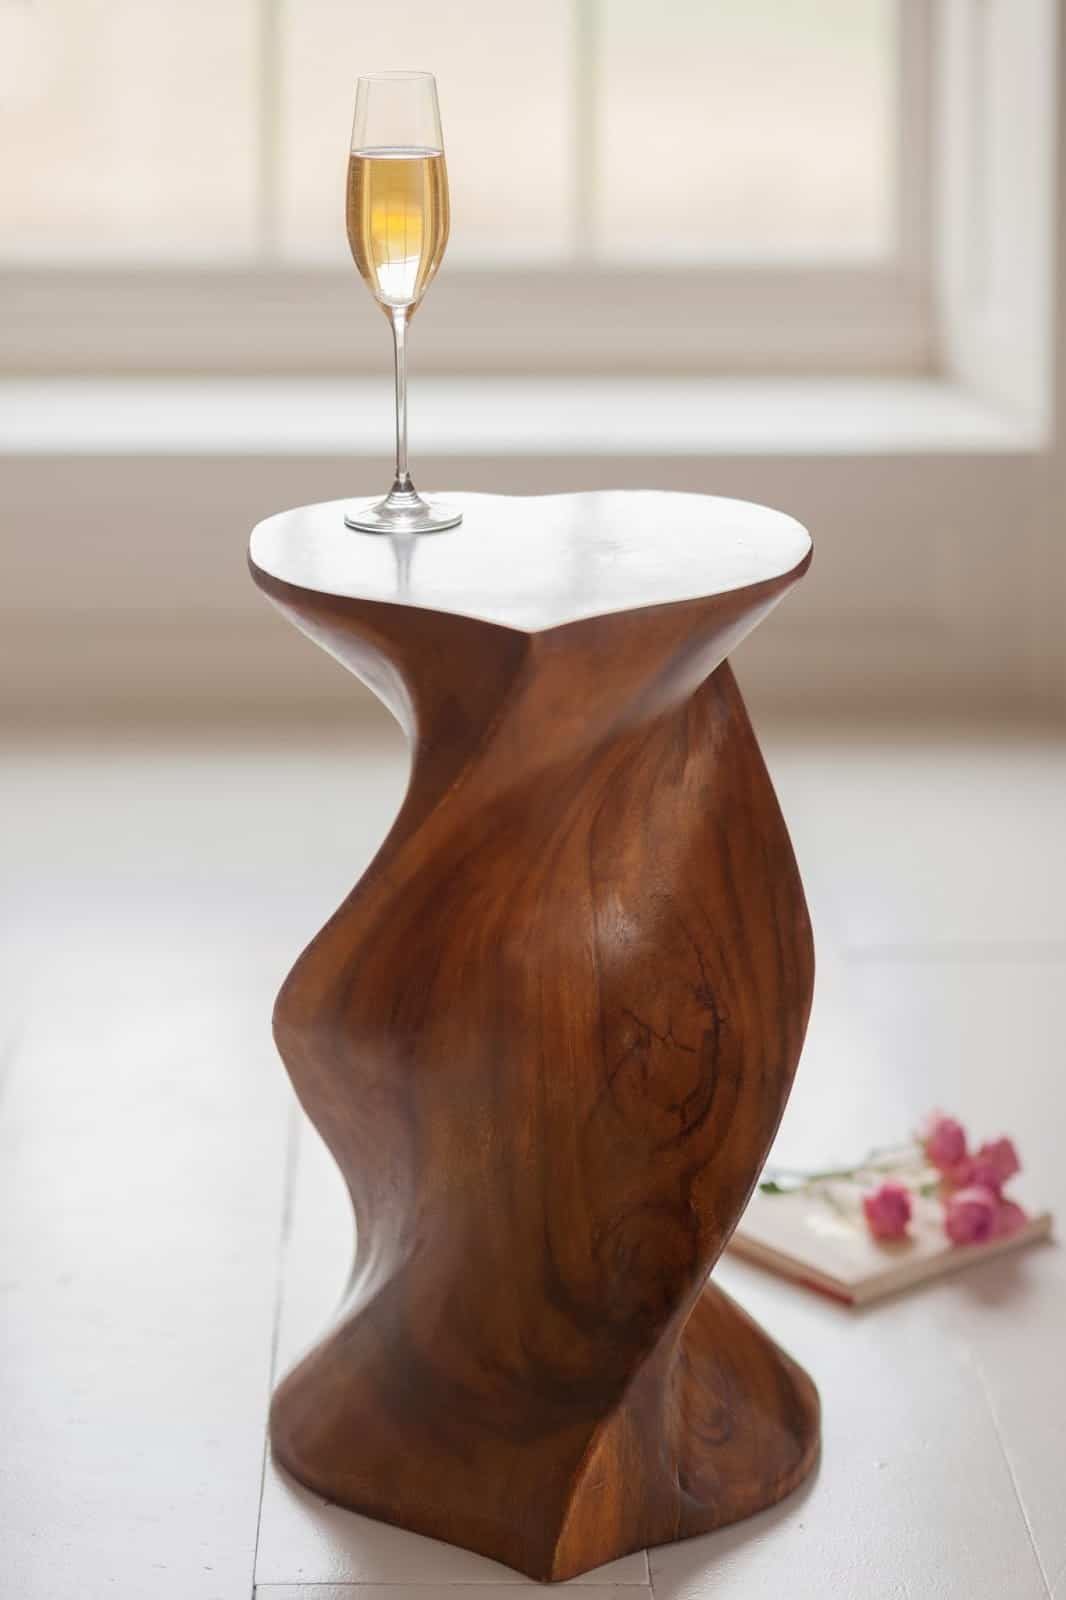 As A Beautiful Modern Piece Of Furniture, I Sure Love This Surin Love Heart  Table With Its Spiraling Base. Hand Spun From A Solid Monkey Pod, This  Romantic ...